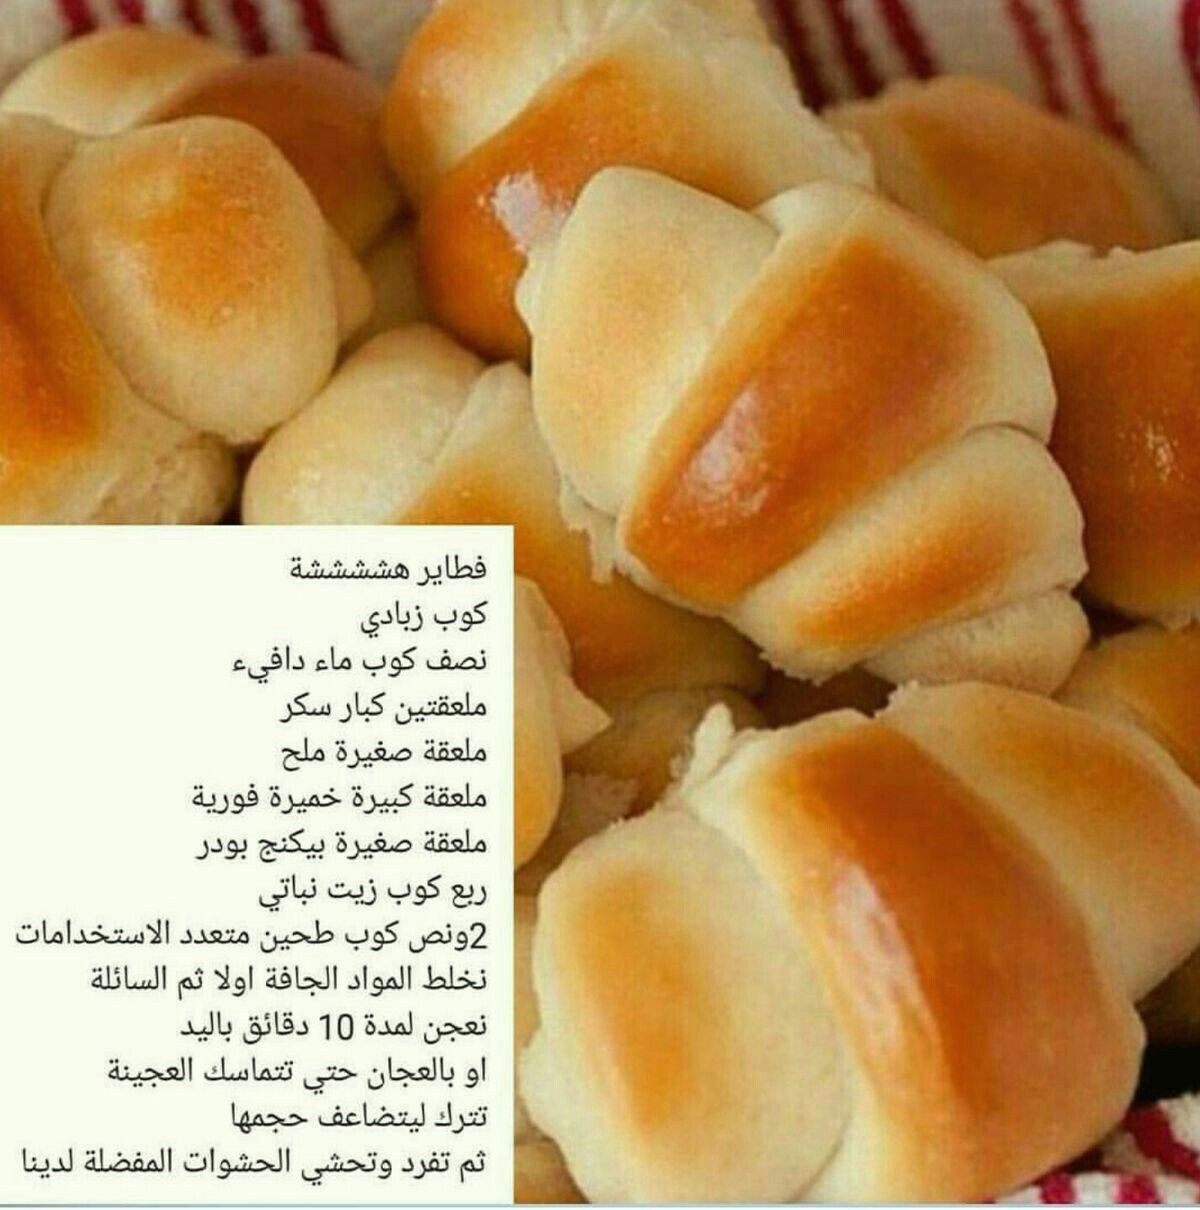 Pin By Asmaa Diab On Recettes De Cuisine In 2020 Cooking Recipes Desserts Food Receipes Food Recipies